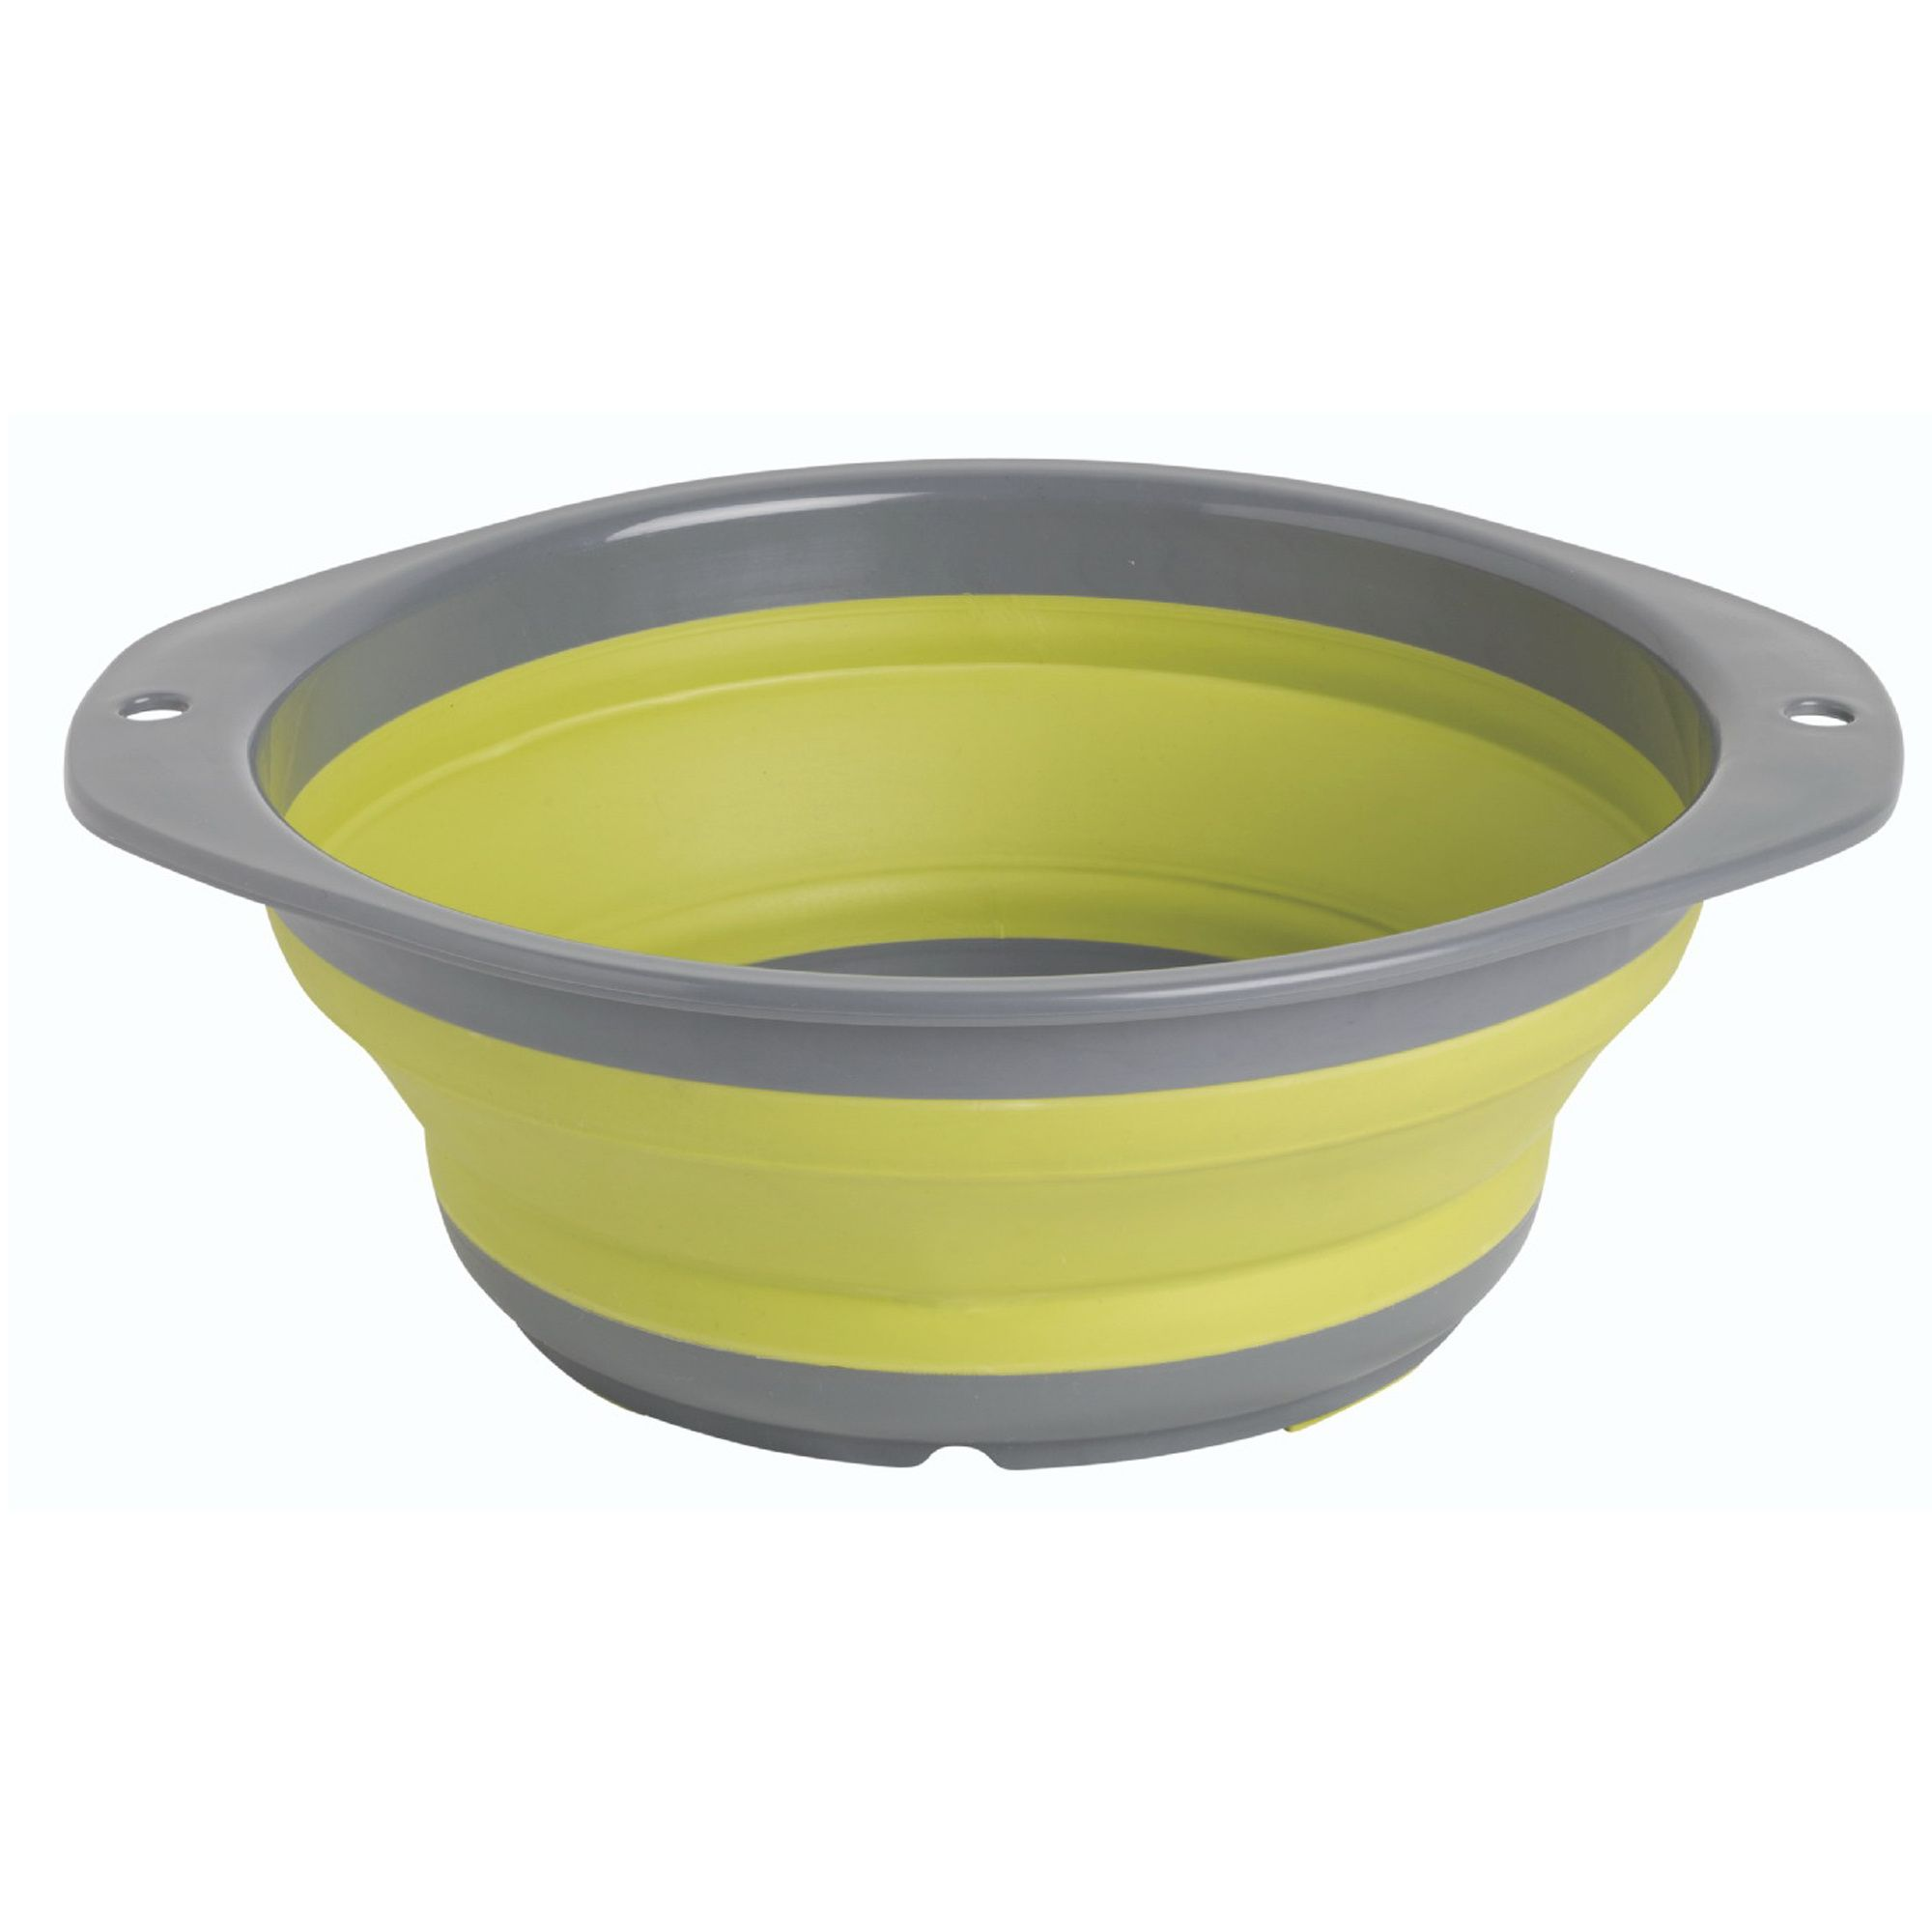 OUTWELL Collapsible Bowl